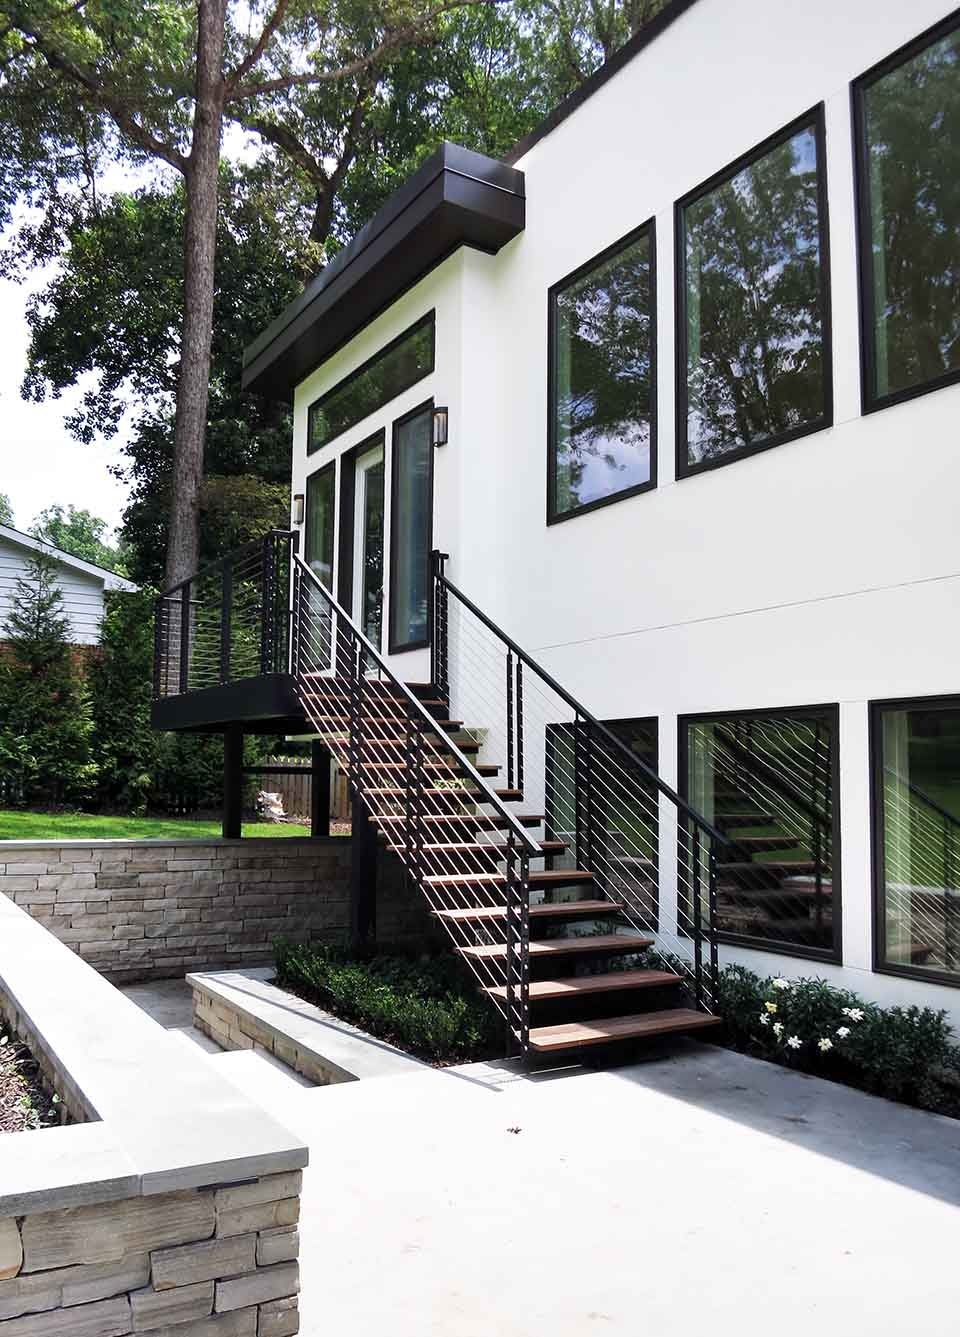 Exterior Stairs Design Construction Artistic Stairs | Outside Stairs Design For House